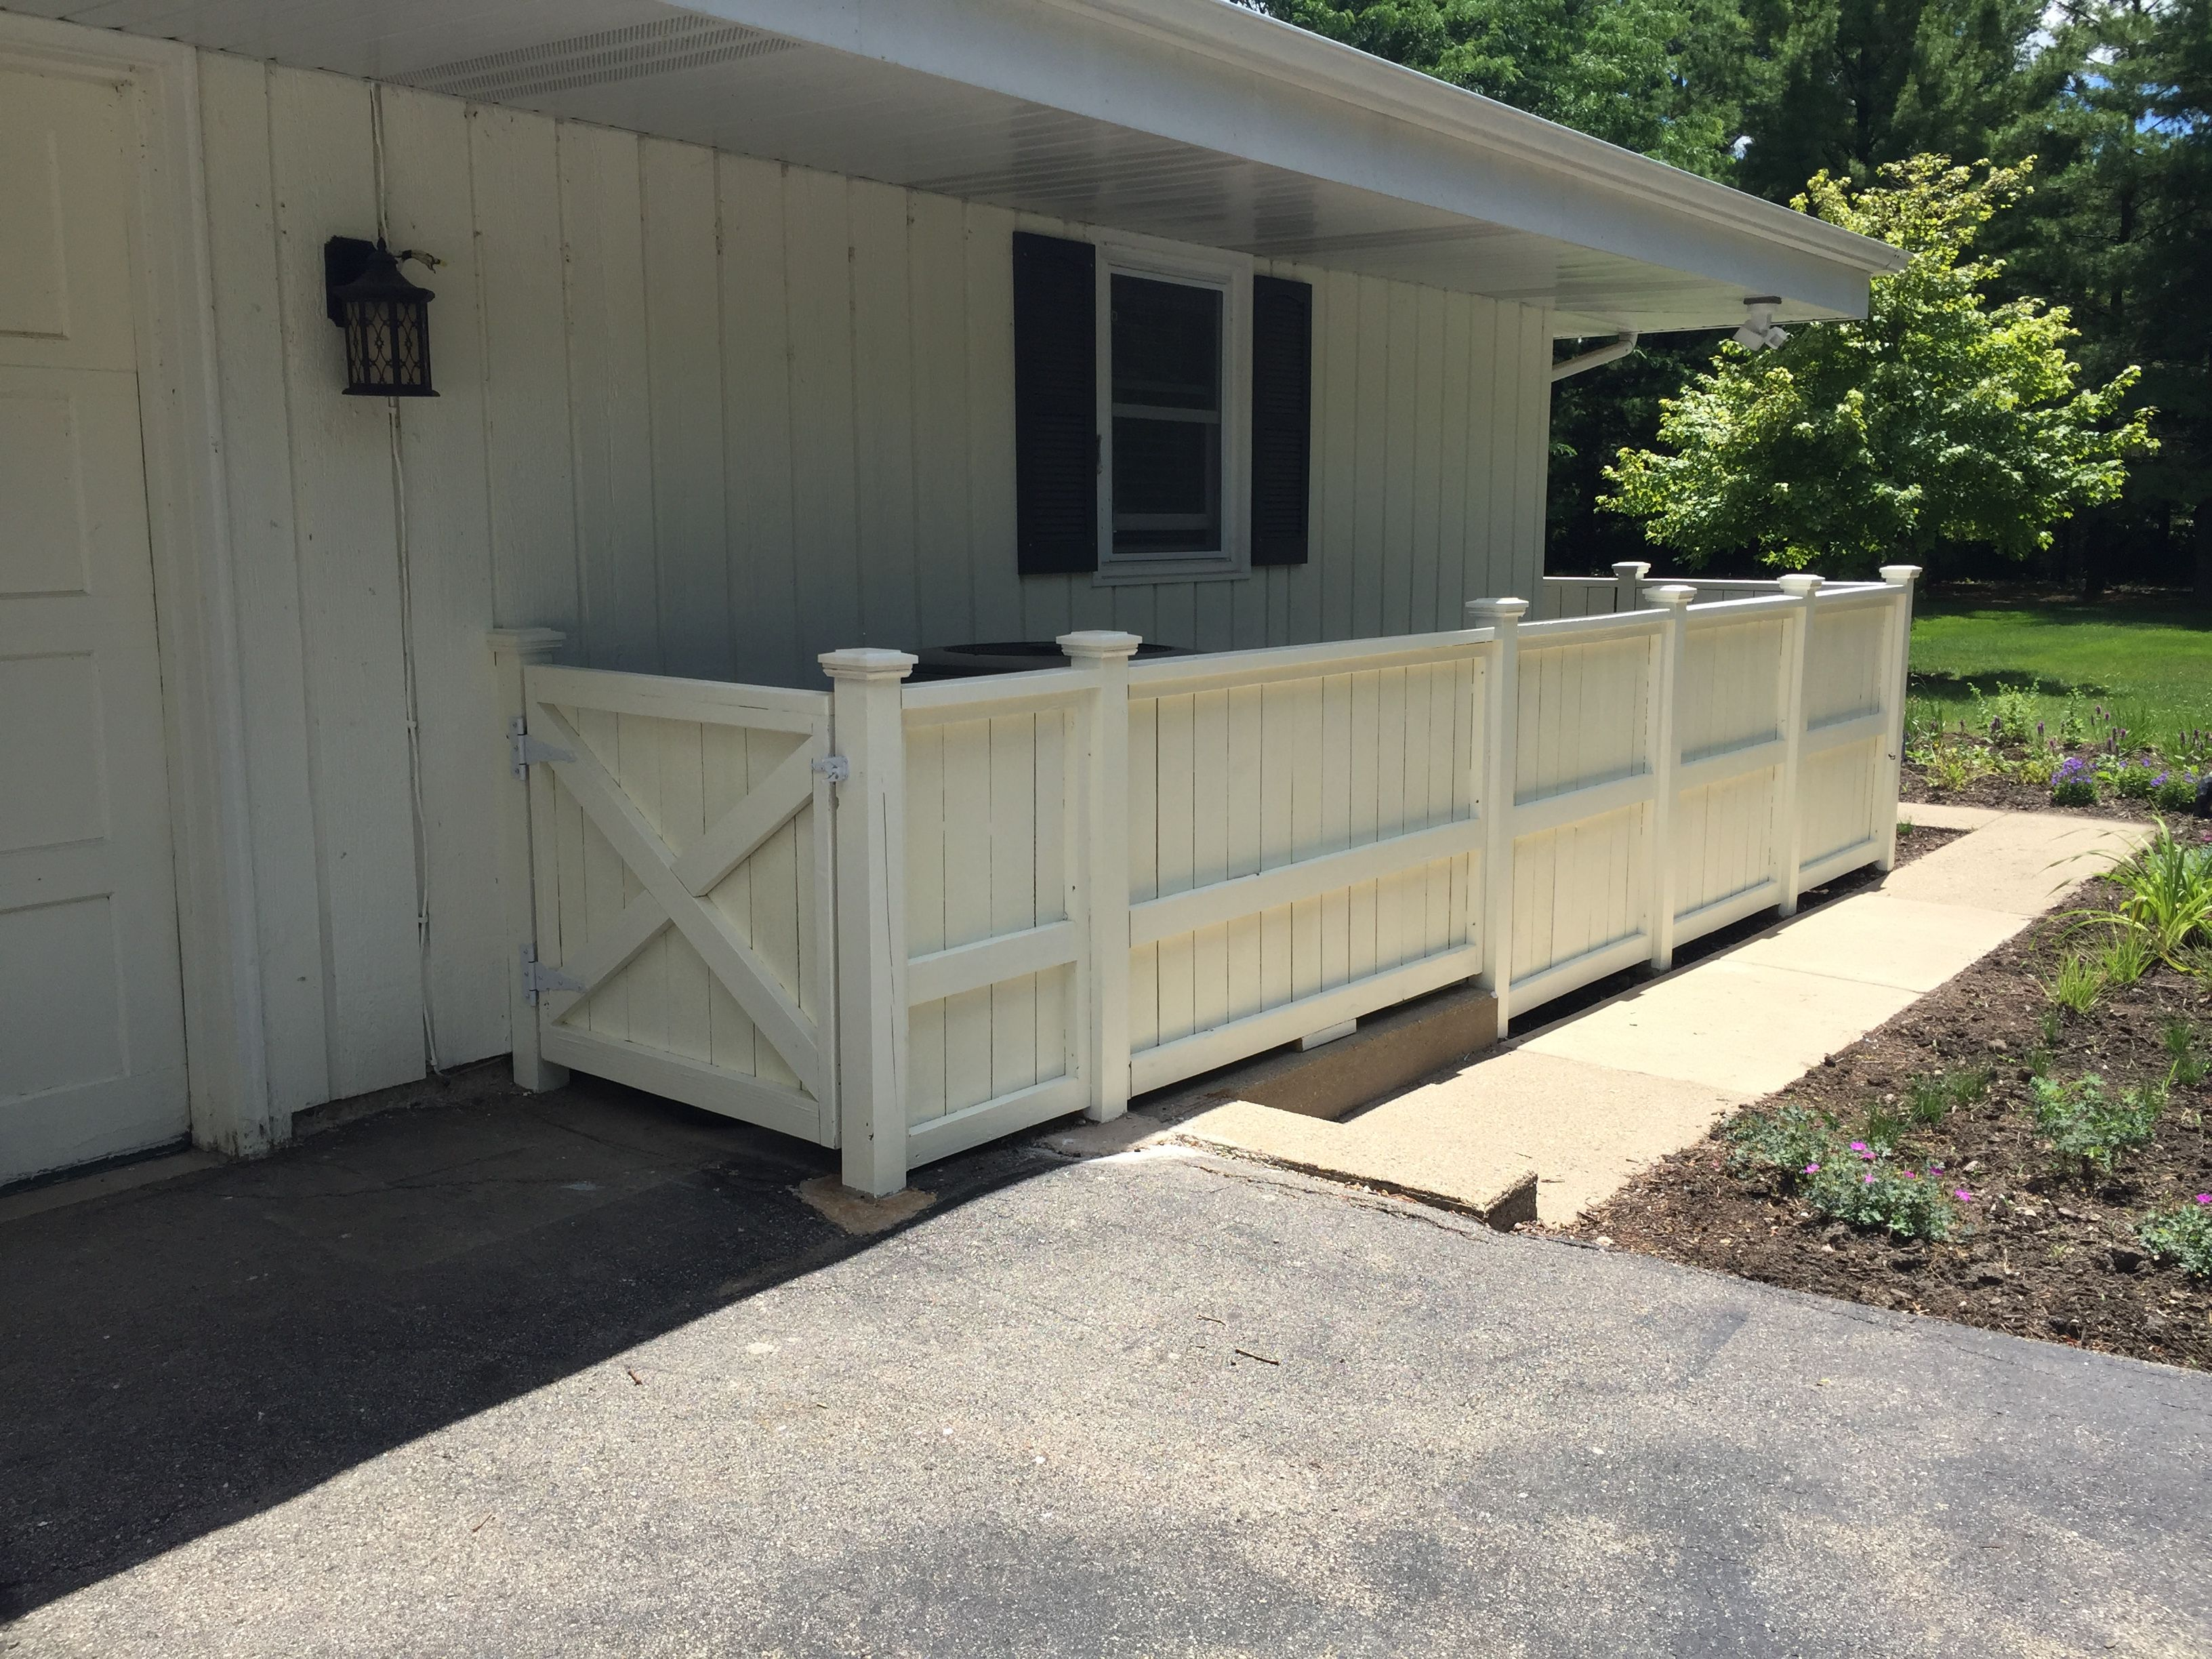 Removable Privacy Fence removable fence panels hide the waste container, air conditioner